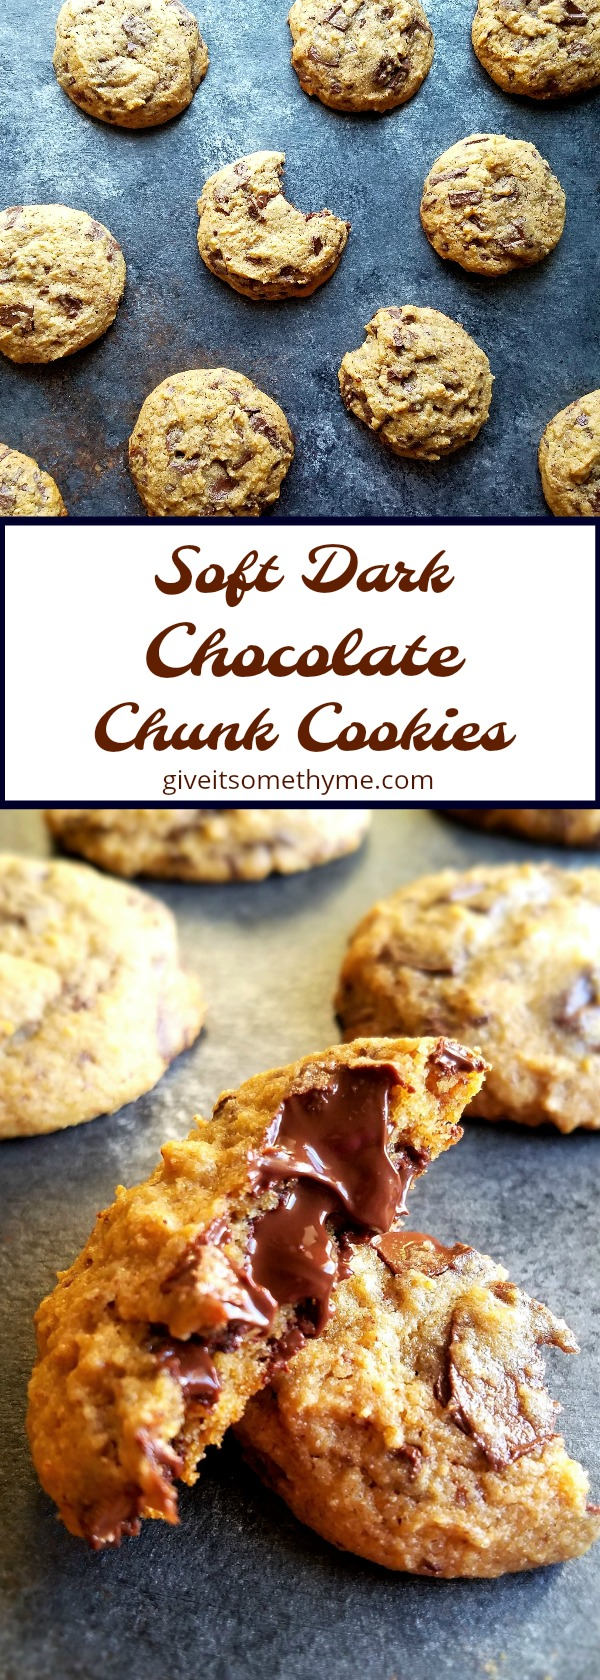 Soft Dark Chocolate Chunk Cookies - Give it Some Thyme